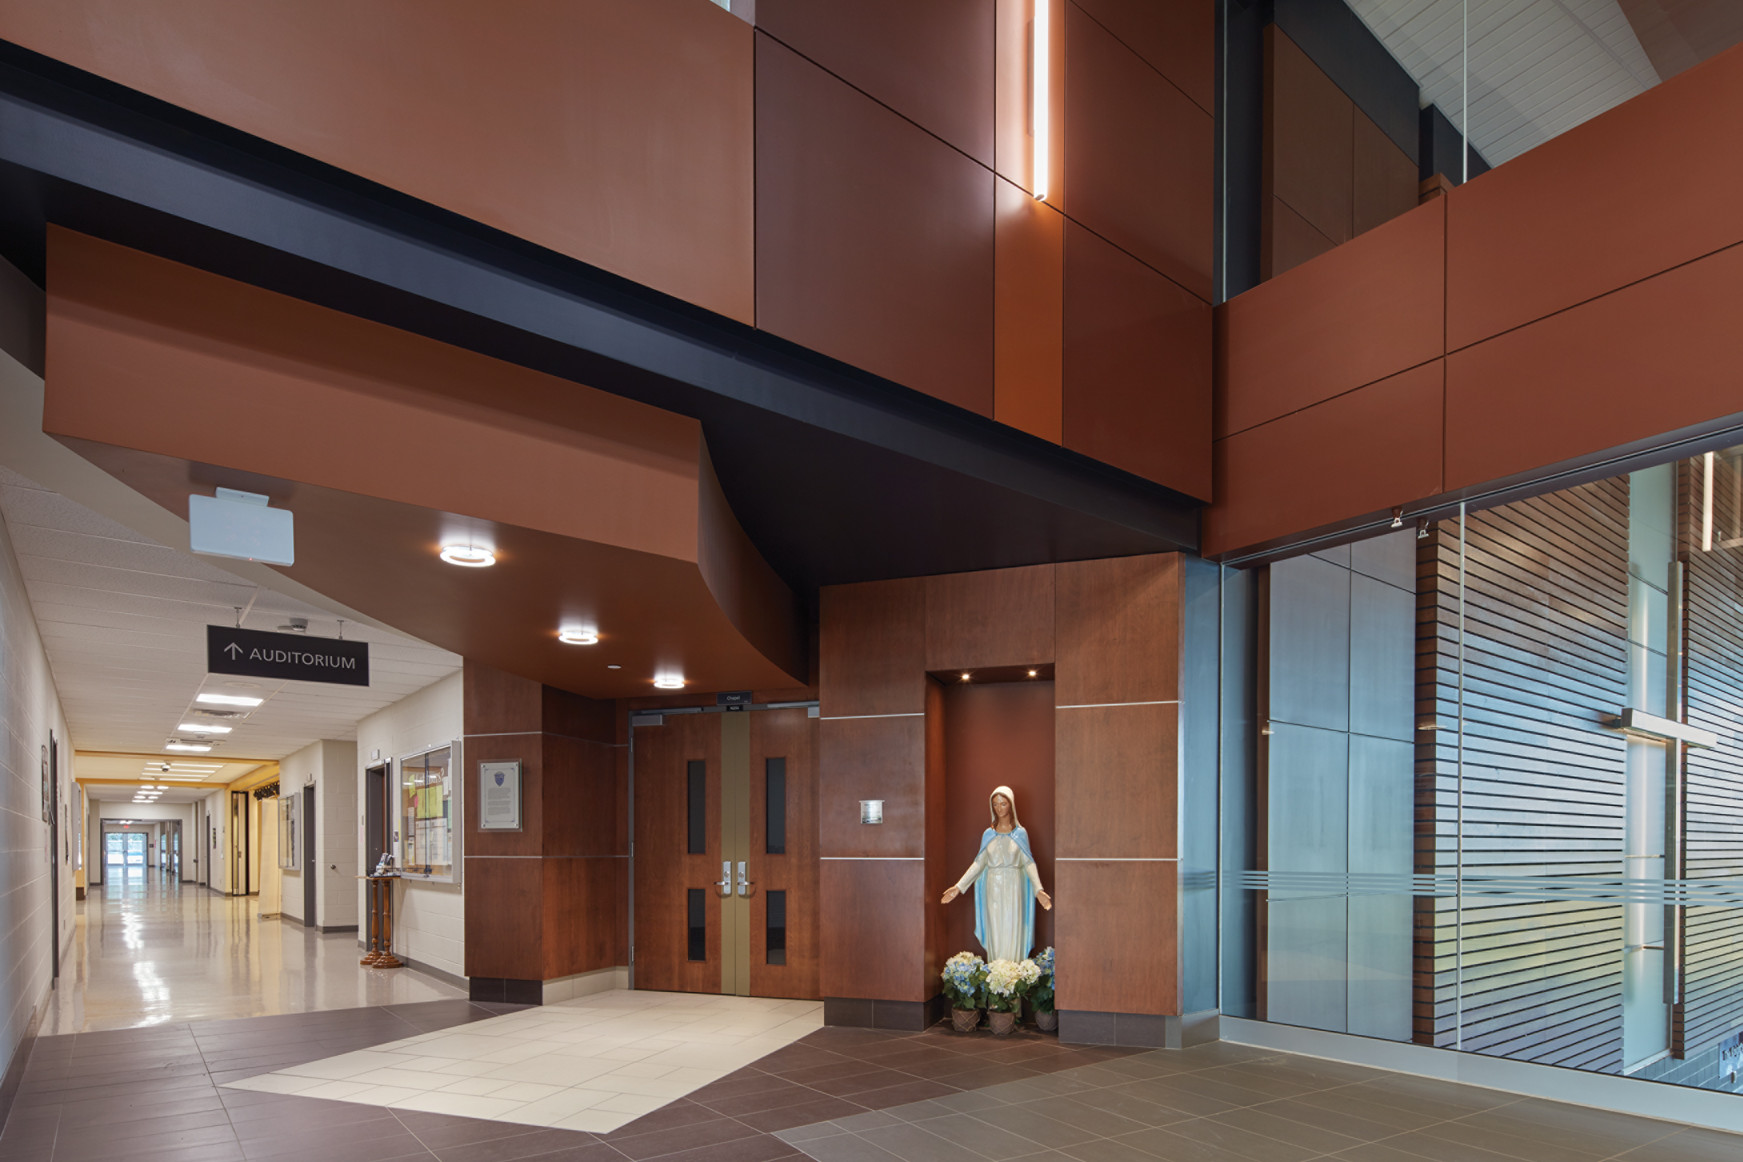 Double height atrium space with statue of the Virgin Mary looking down hallway on left and through wall window to Cafeteria on right